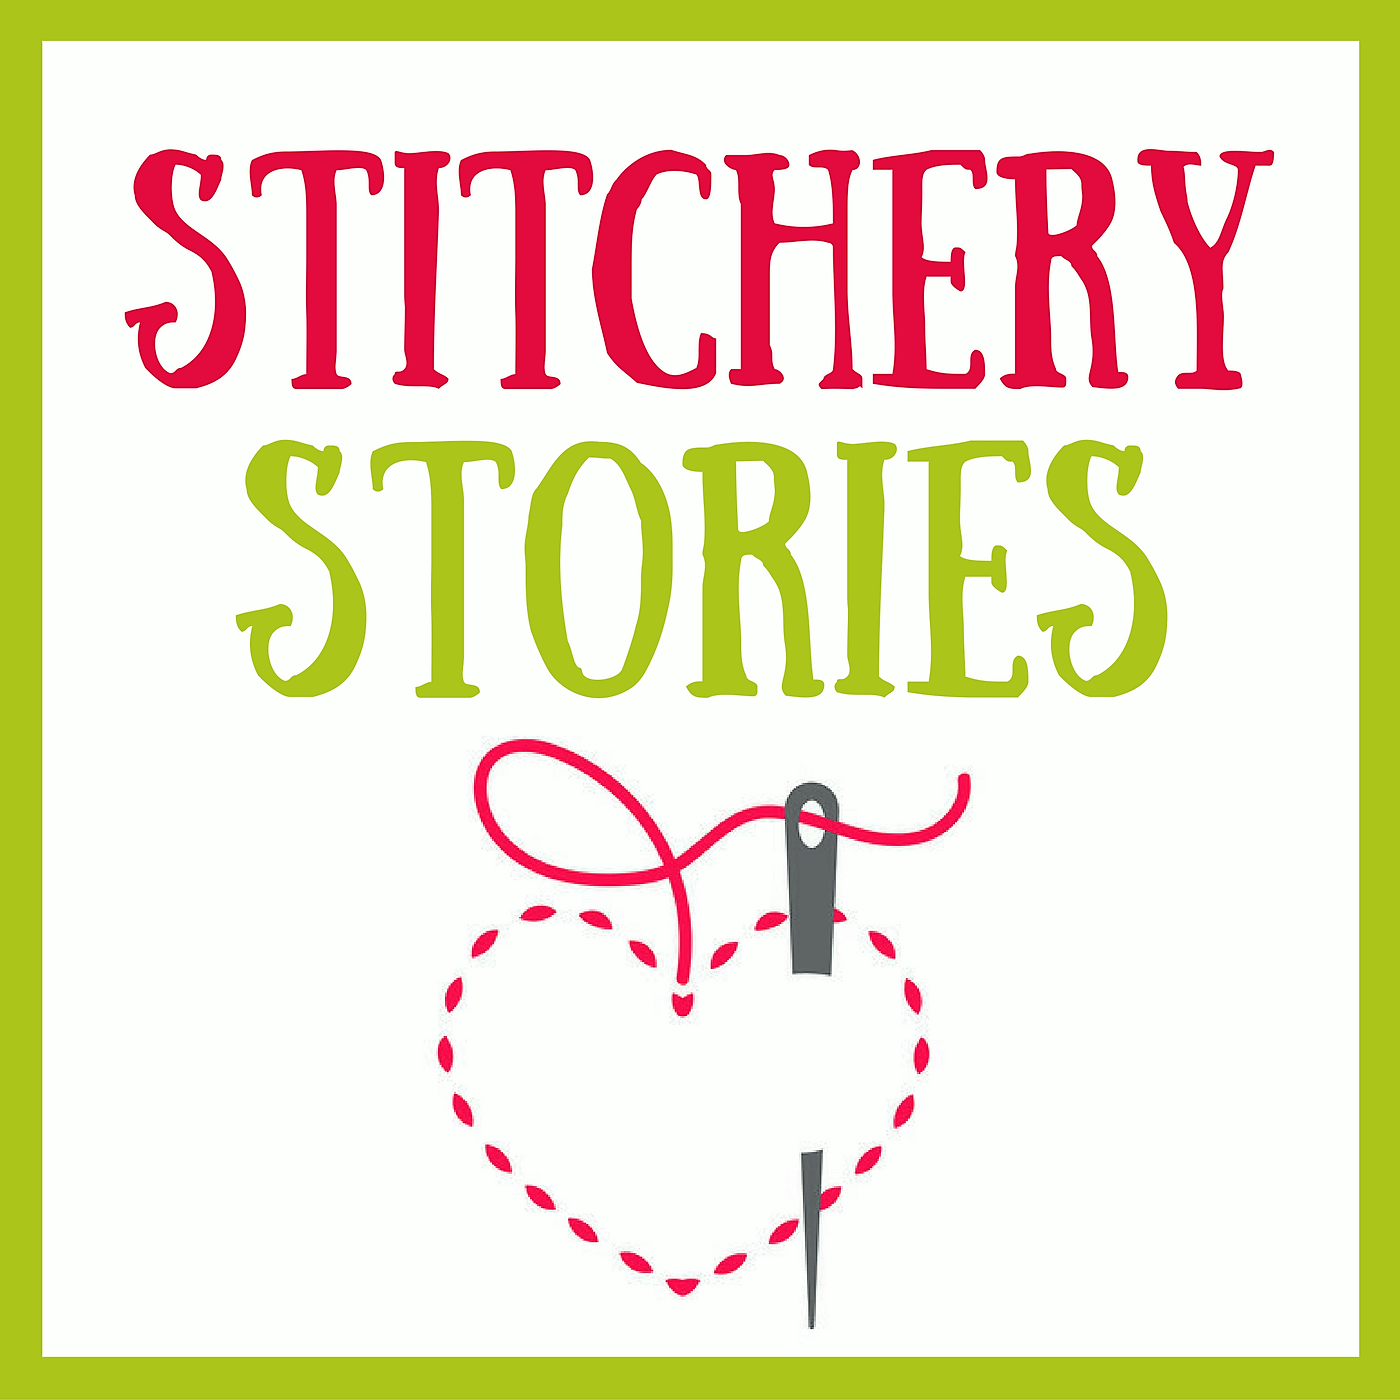 Stitchery Stories 1400x1400.png